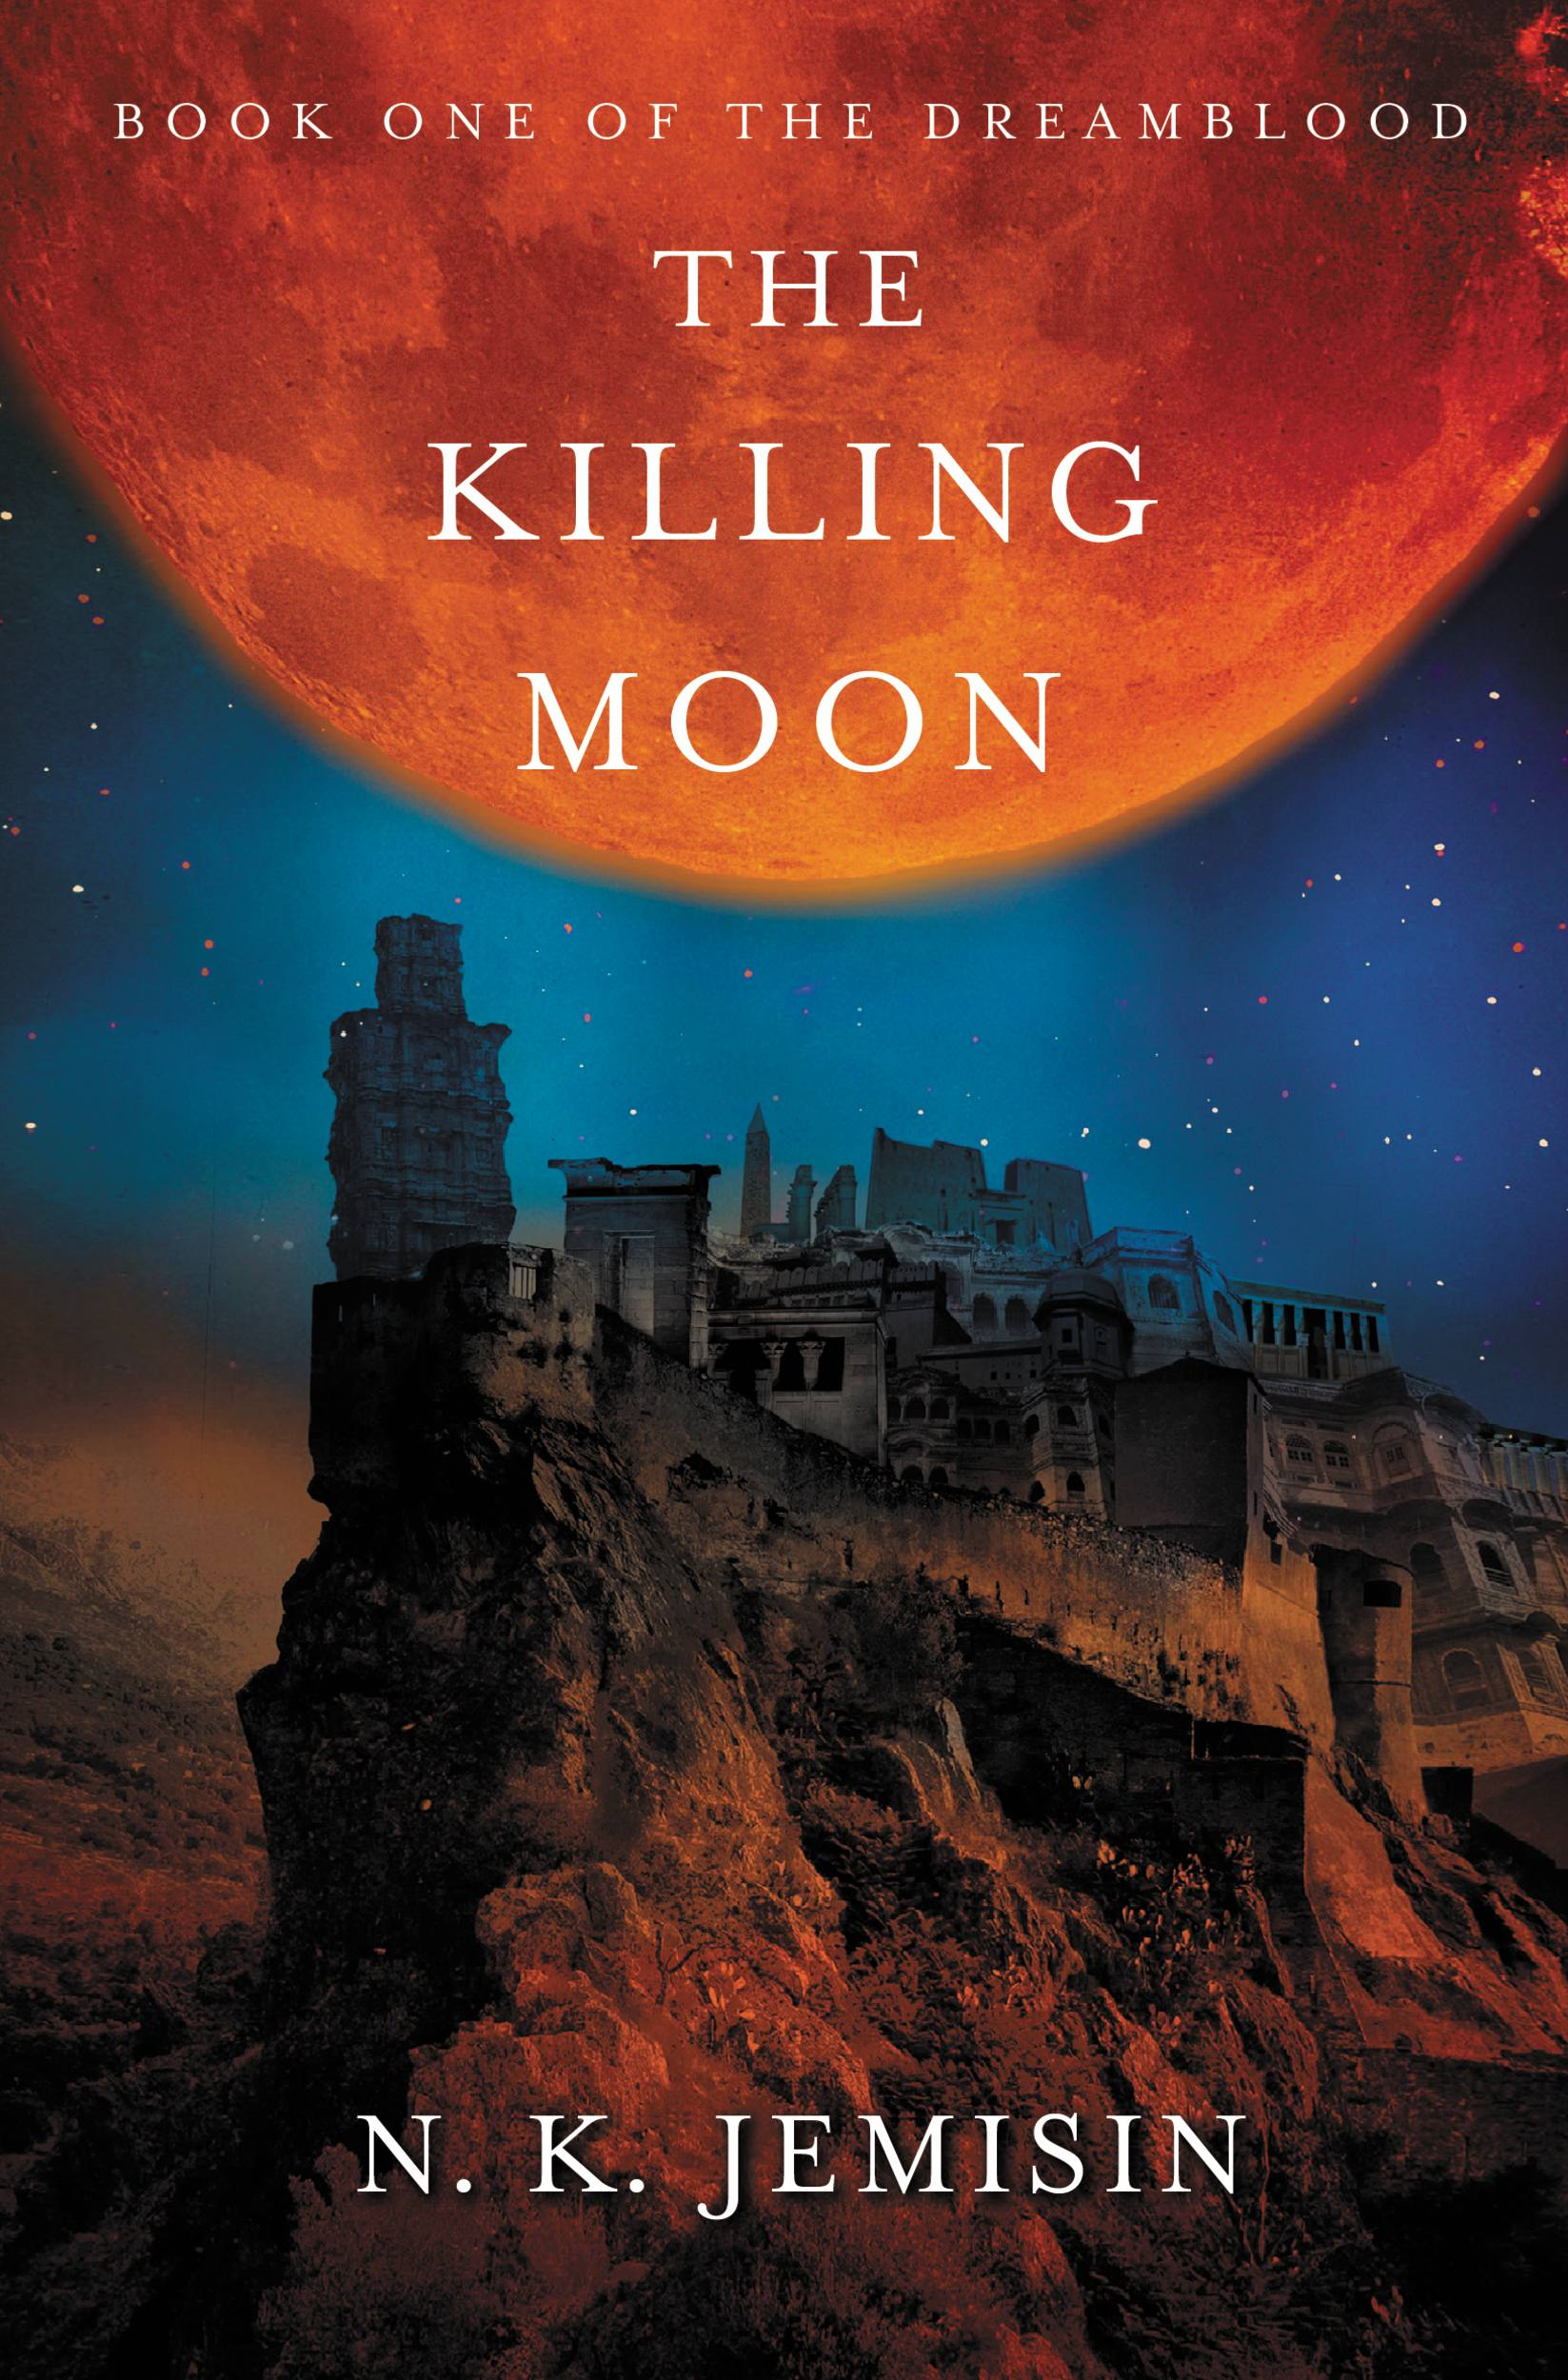 The Killing Moon By: N. K. Jemisin